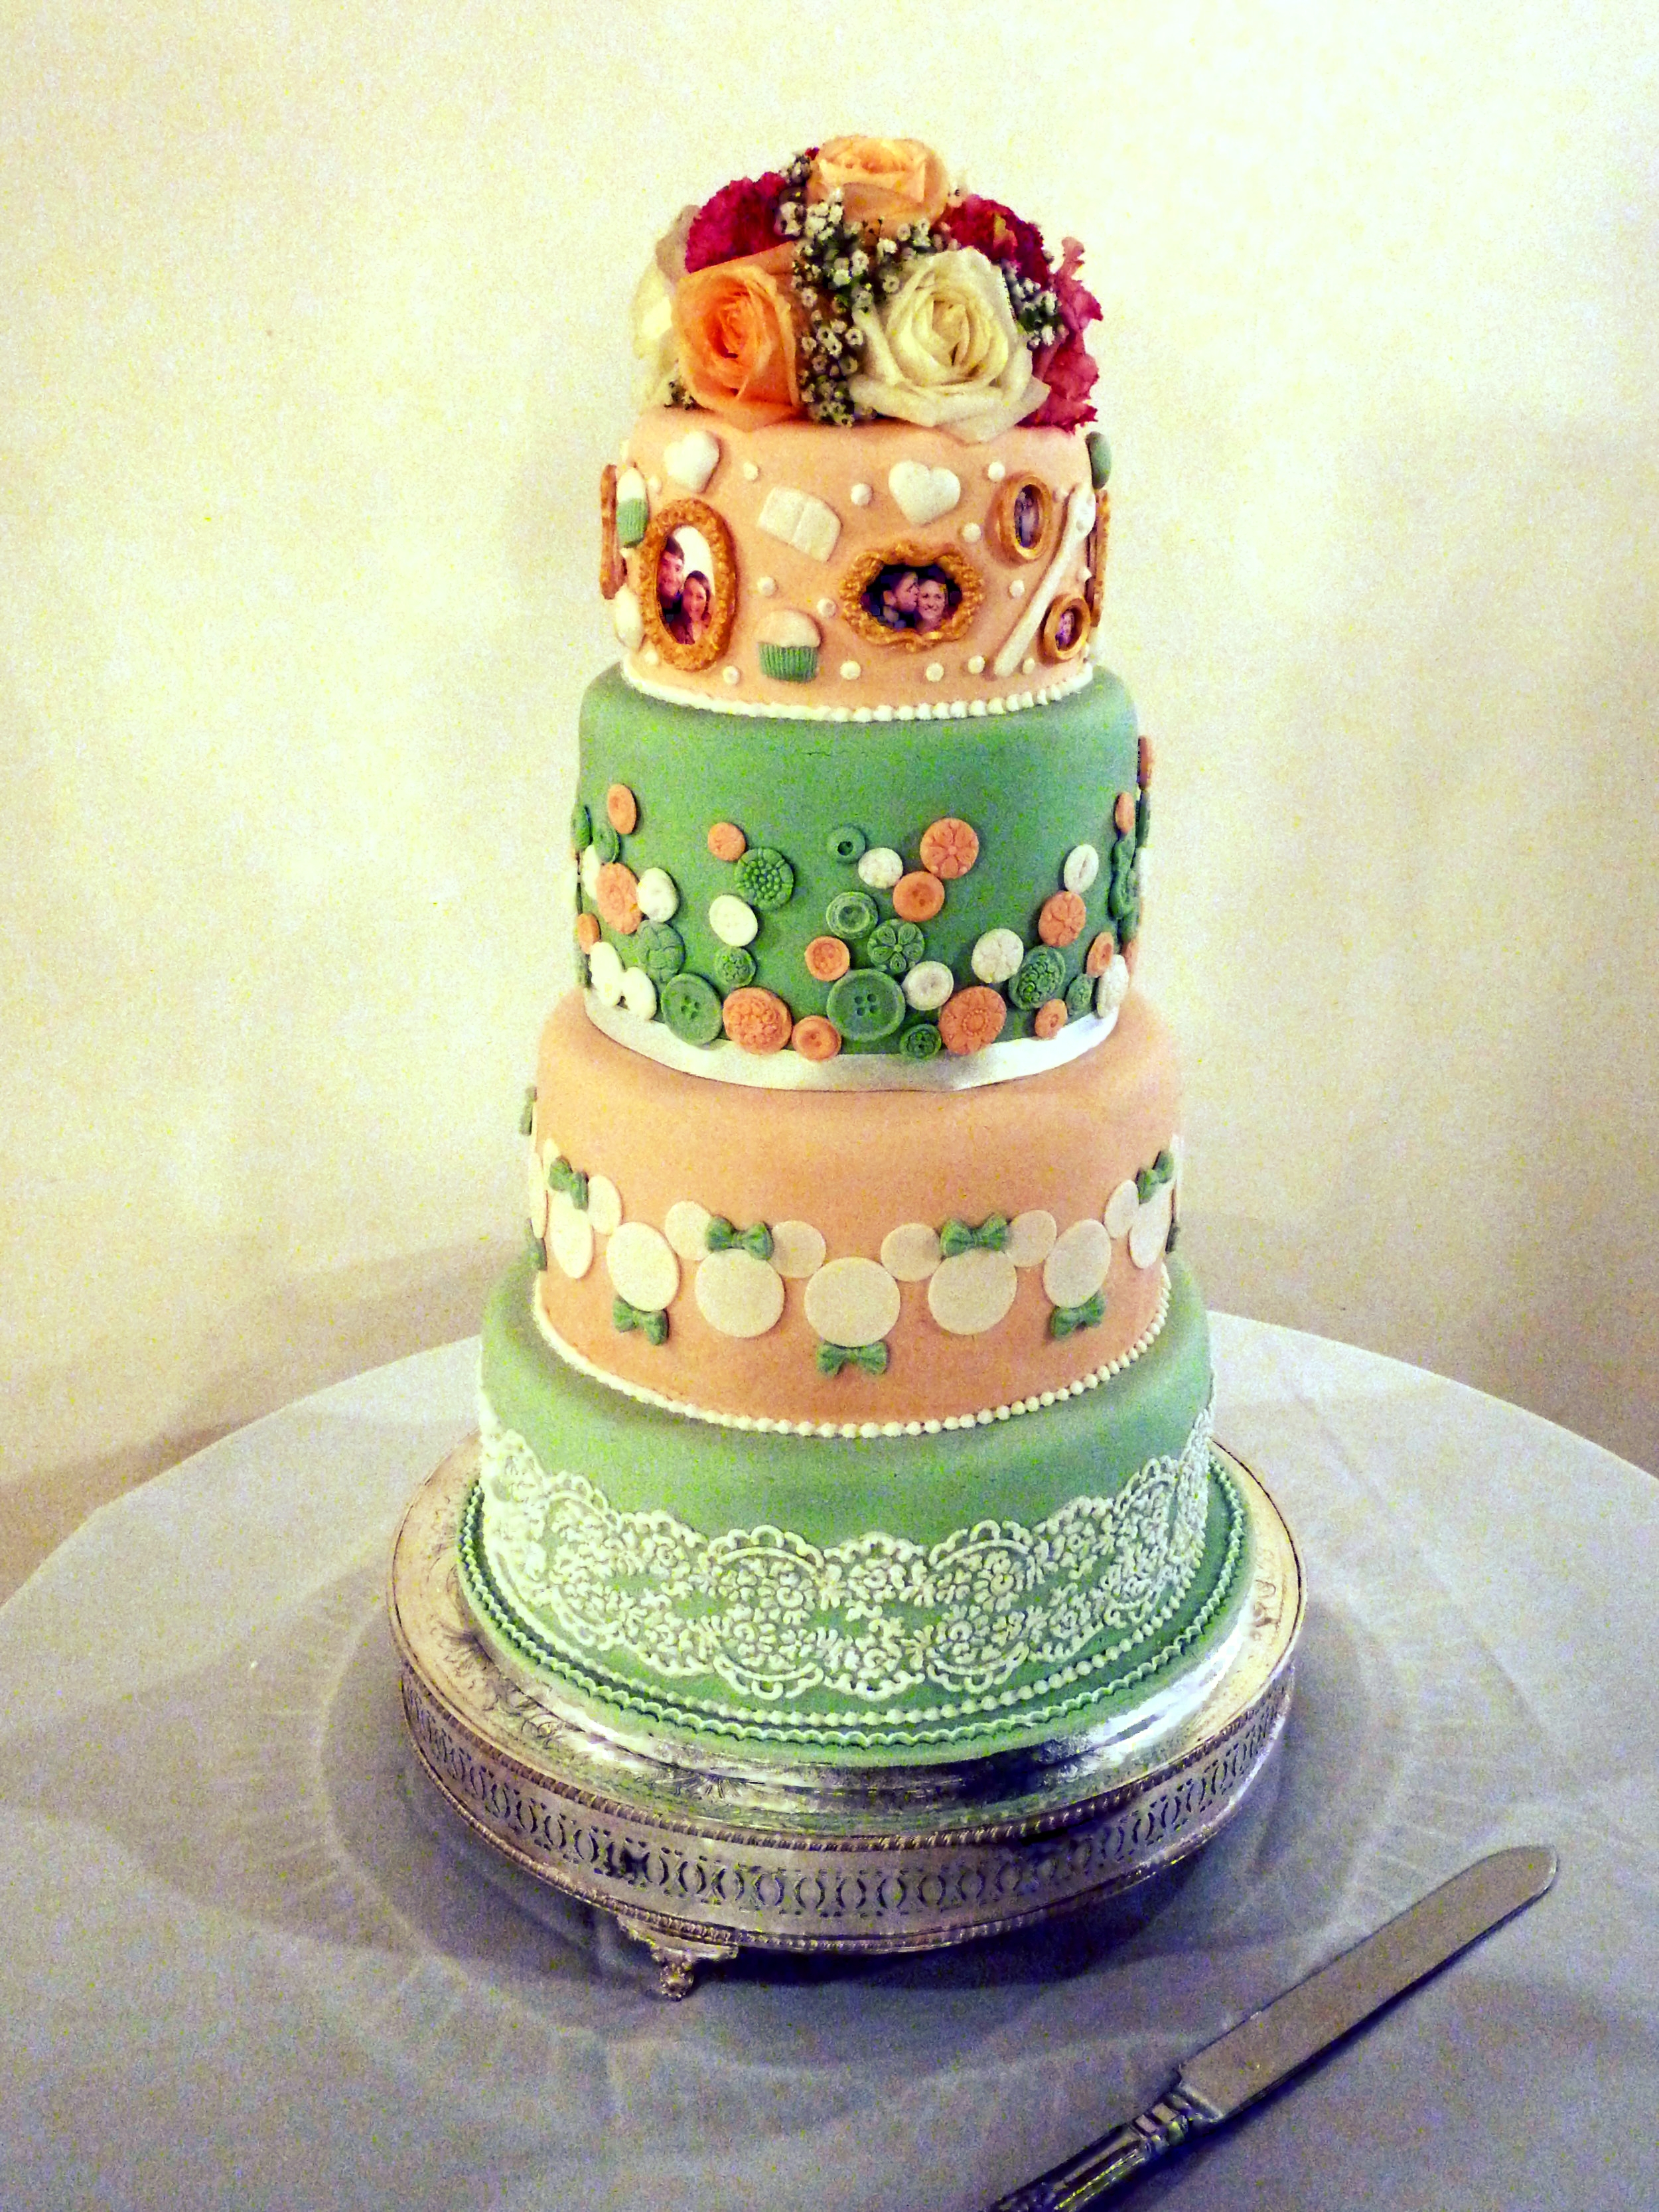 Pretty as a picture - Very personal wedding cake, in 4 tiers, with pictures of the bride and groom, buttons (you are as cute as a button), the bride's career in Disney and hand piped lace to match the bride's dress. Delicious inside too with carrot, vanilla, fruit and chocolate cake.